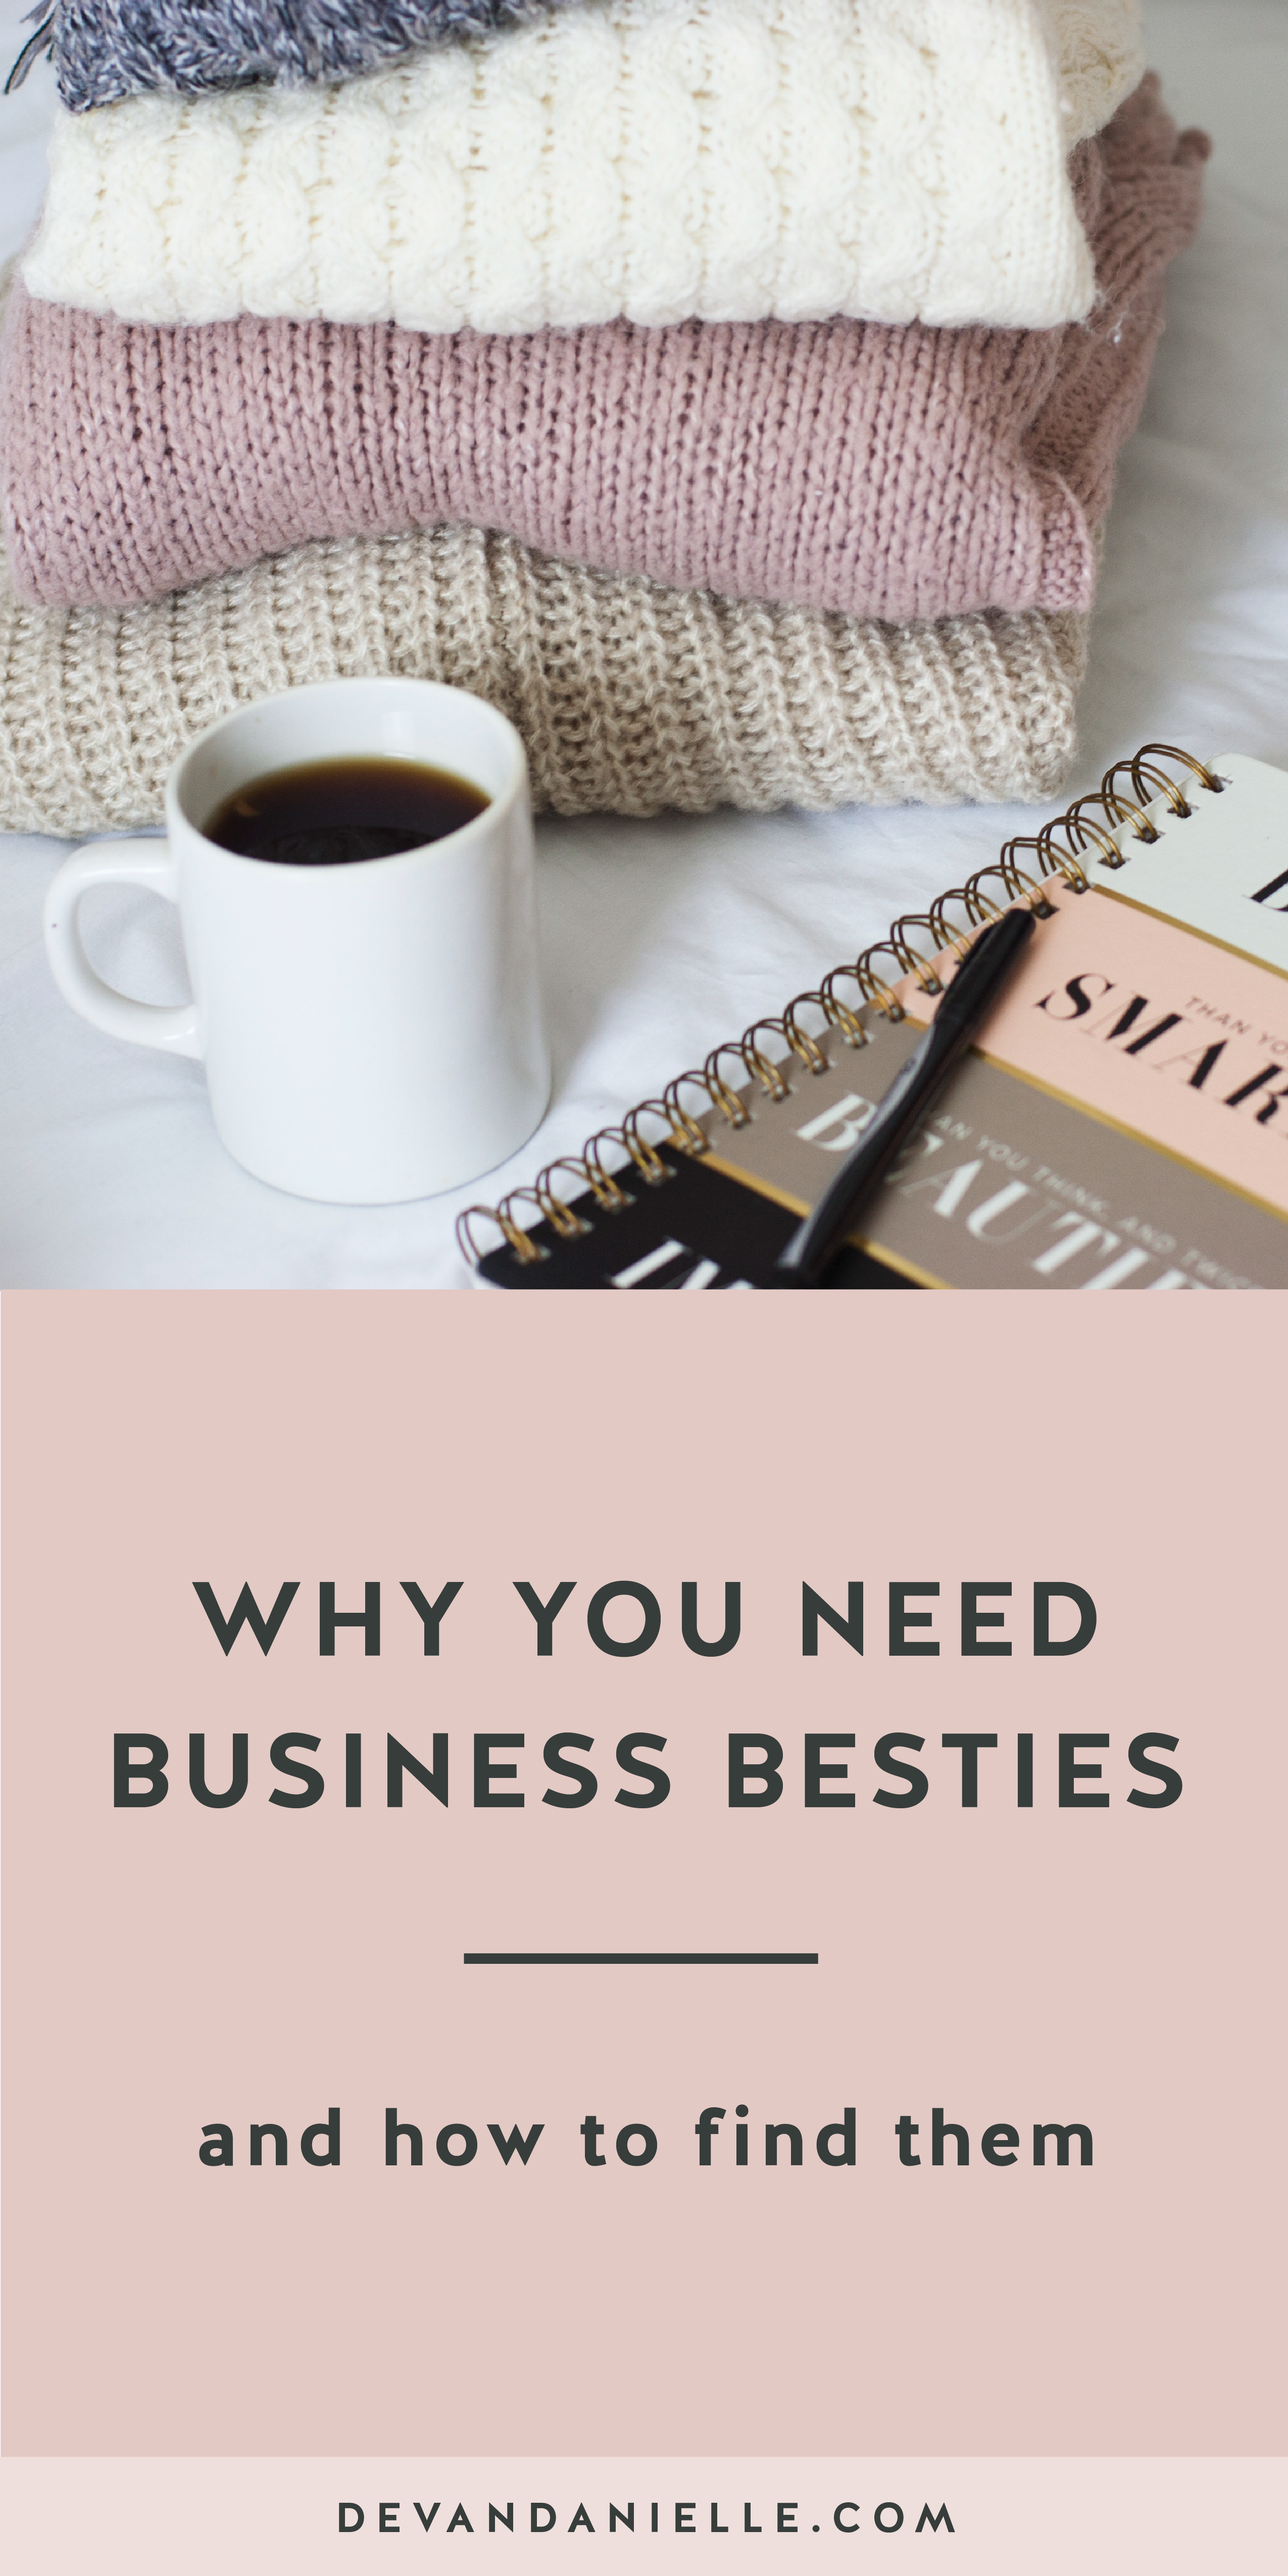 Why you need business besties